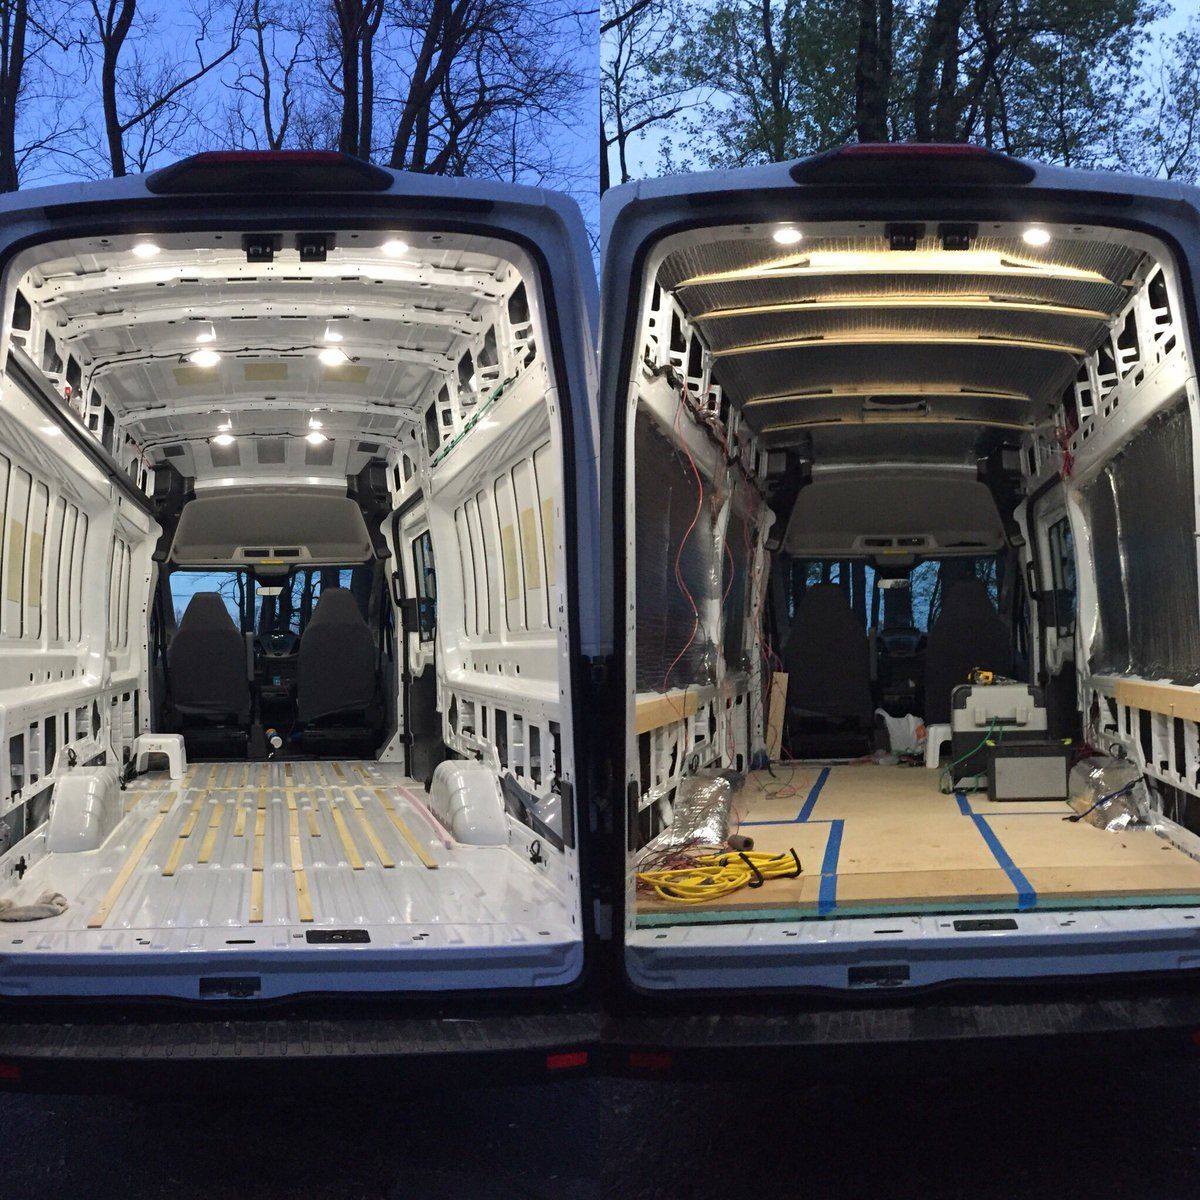 Gibson Outdoors On Twitter Only If You Done This Do Realize Commercial Motor Wiring Ok Insulation And Is Now We Can Start Officially Framing Everything Out Diycamper Vanlife Vanconversion Vanideaspic